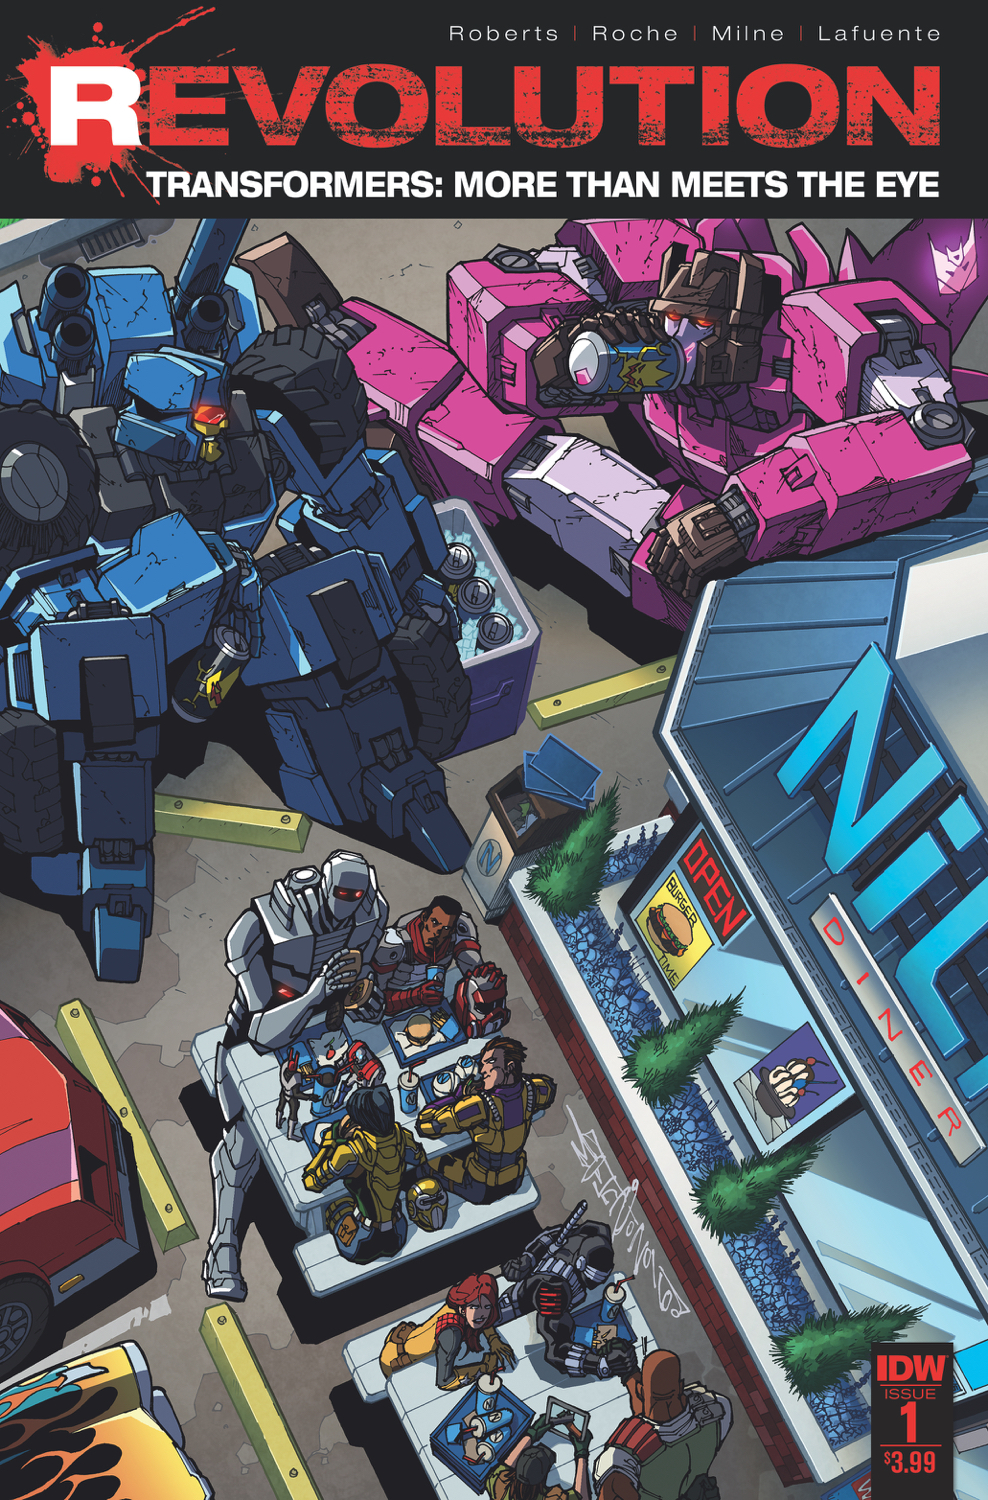 TRANSFORMERS MORE THAN MEETS THE EYE REVOLUTION #1